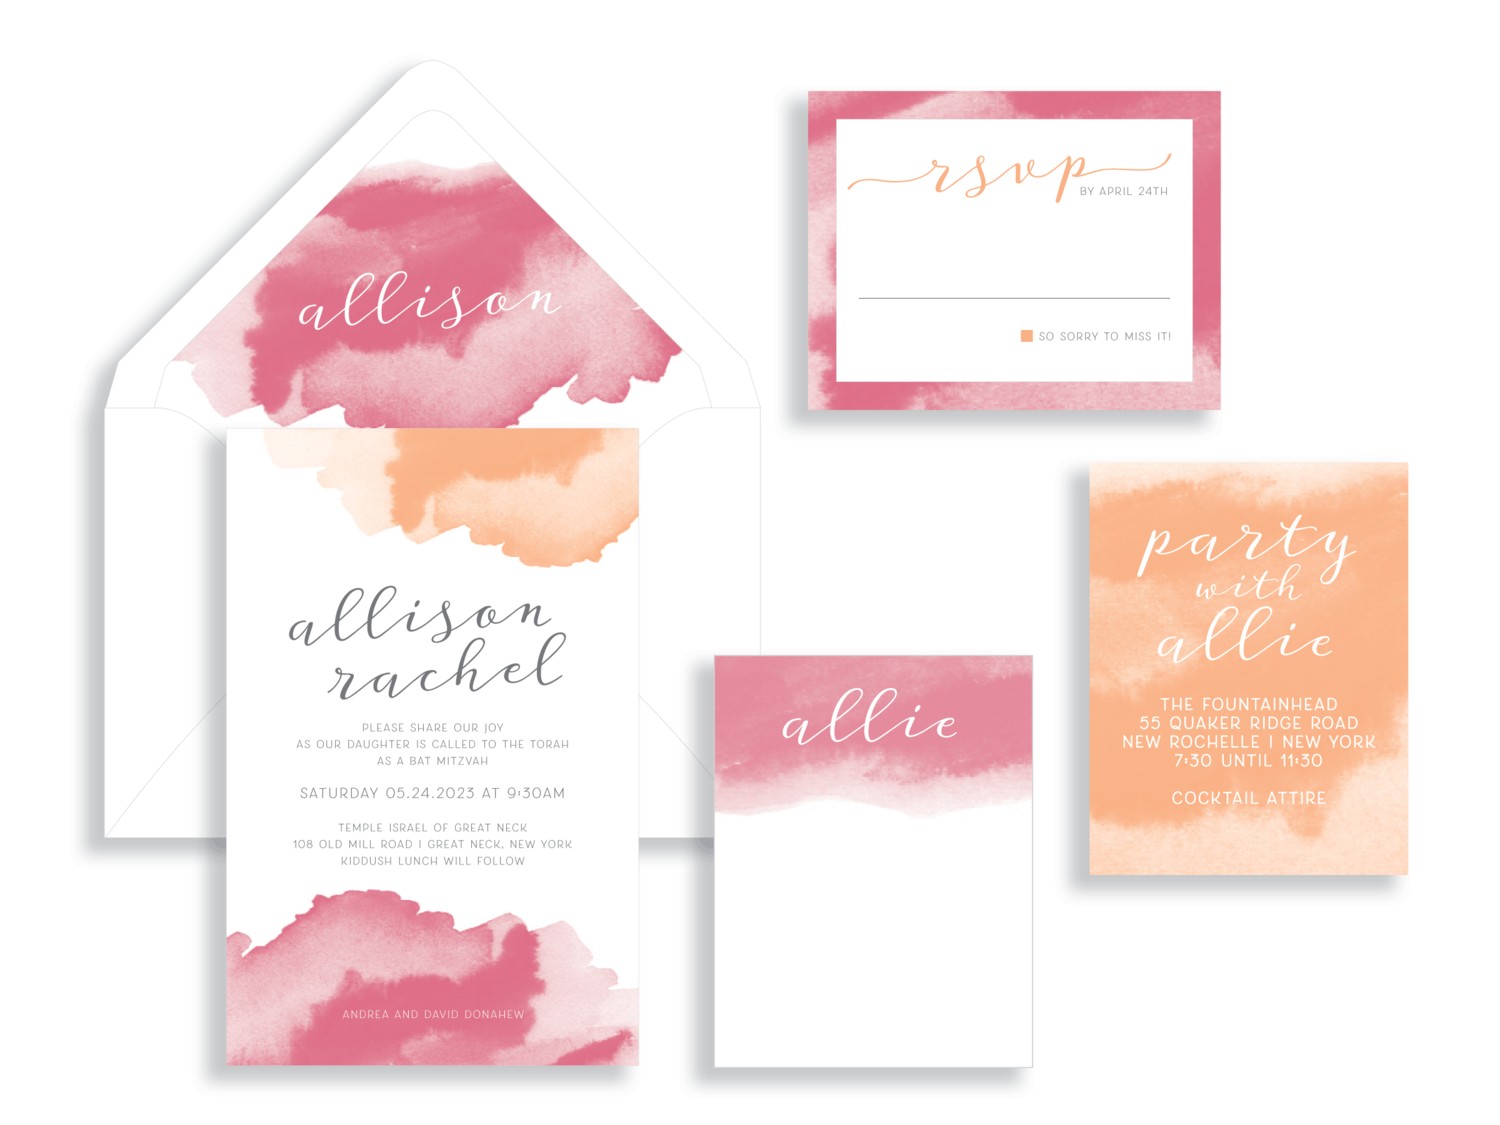 Allison bat mitzvah invitation in the Washington DC Metro area from Staccato.  Customize colors and layers!